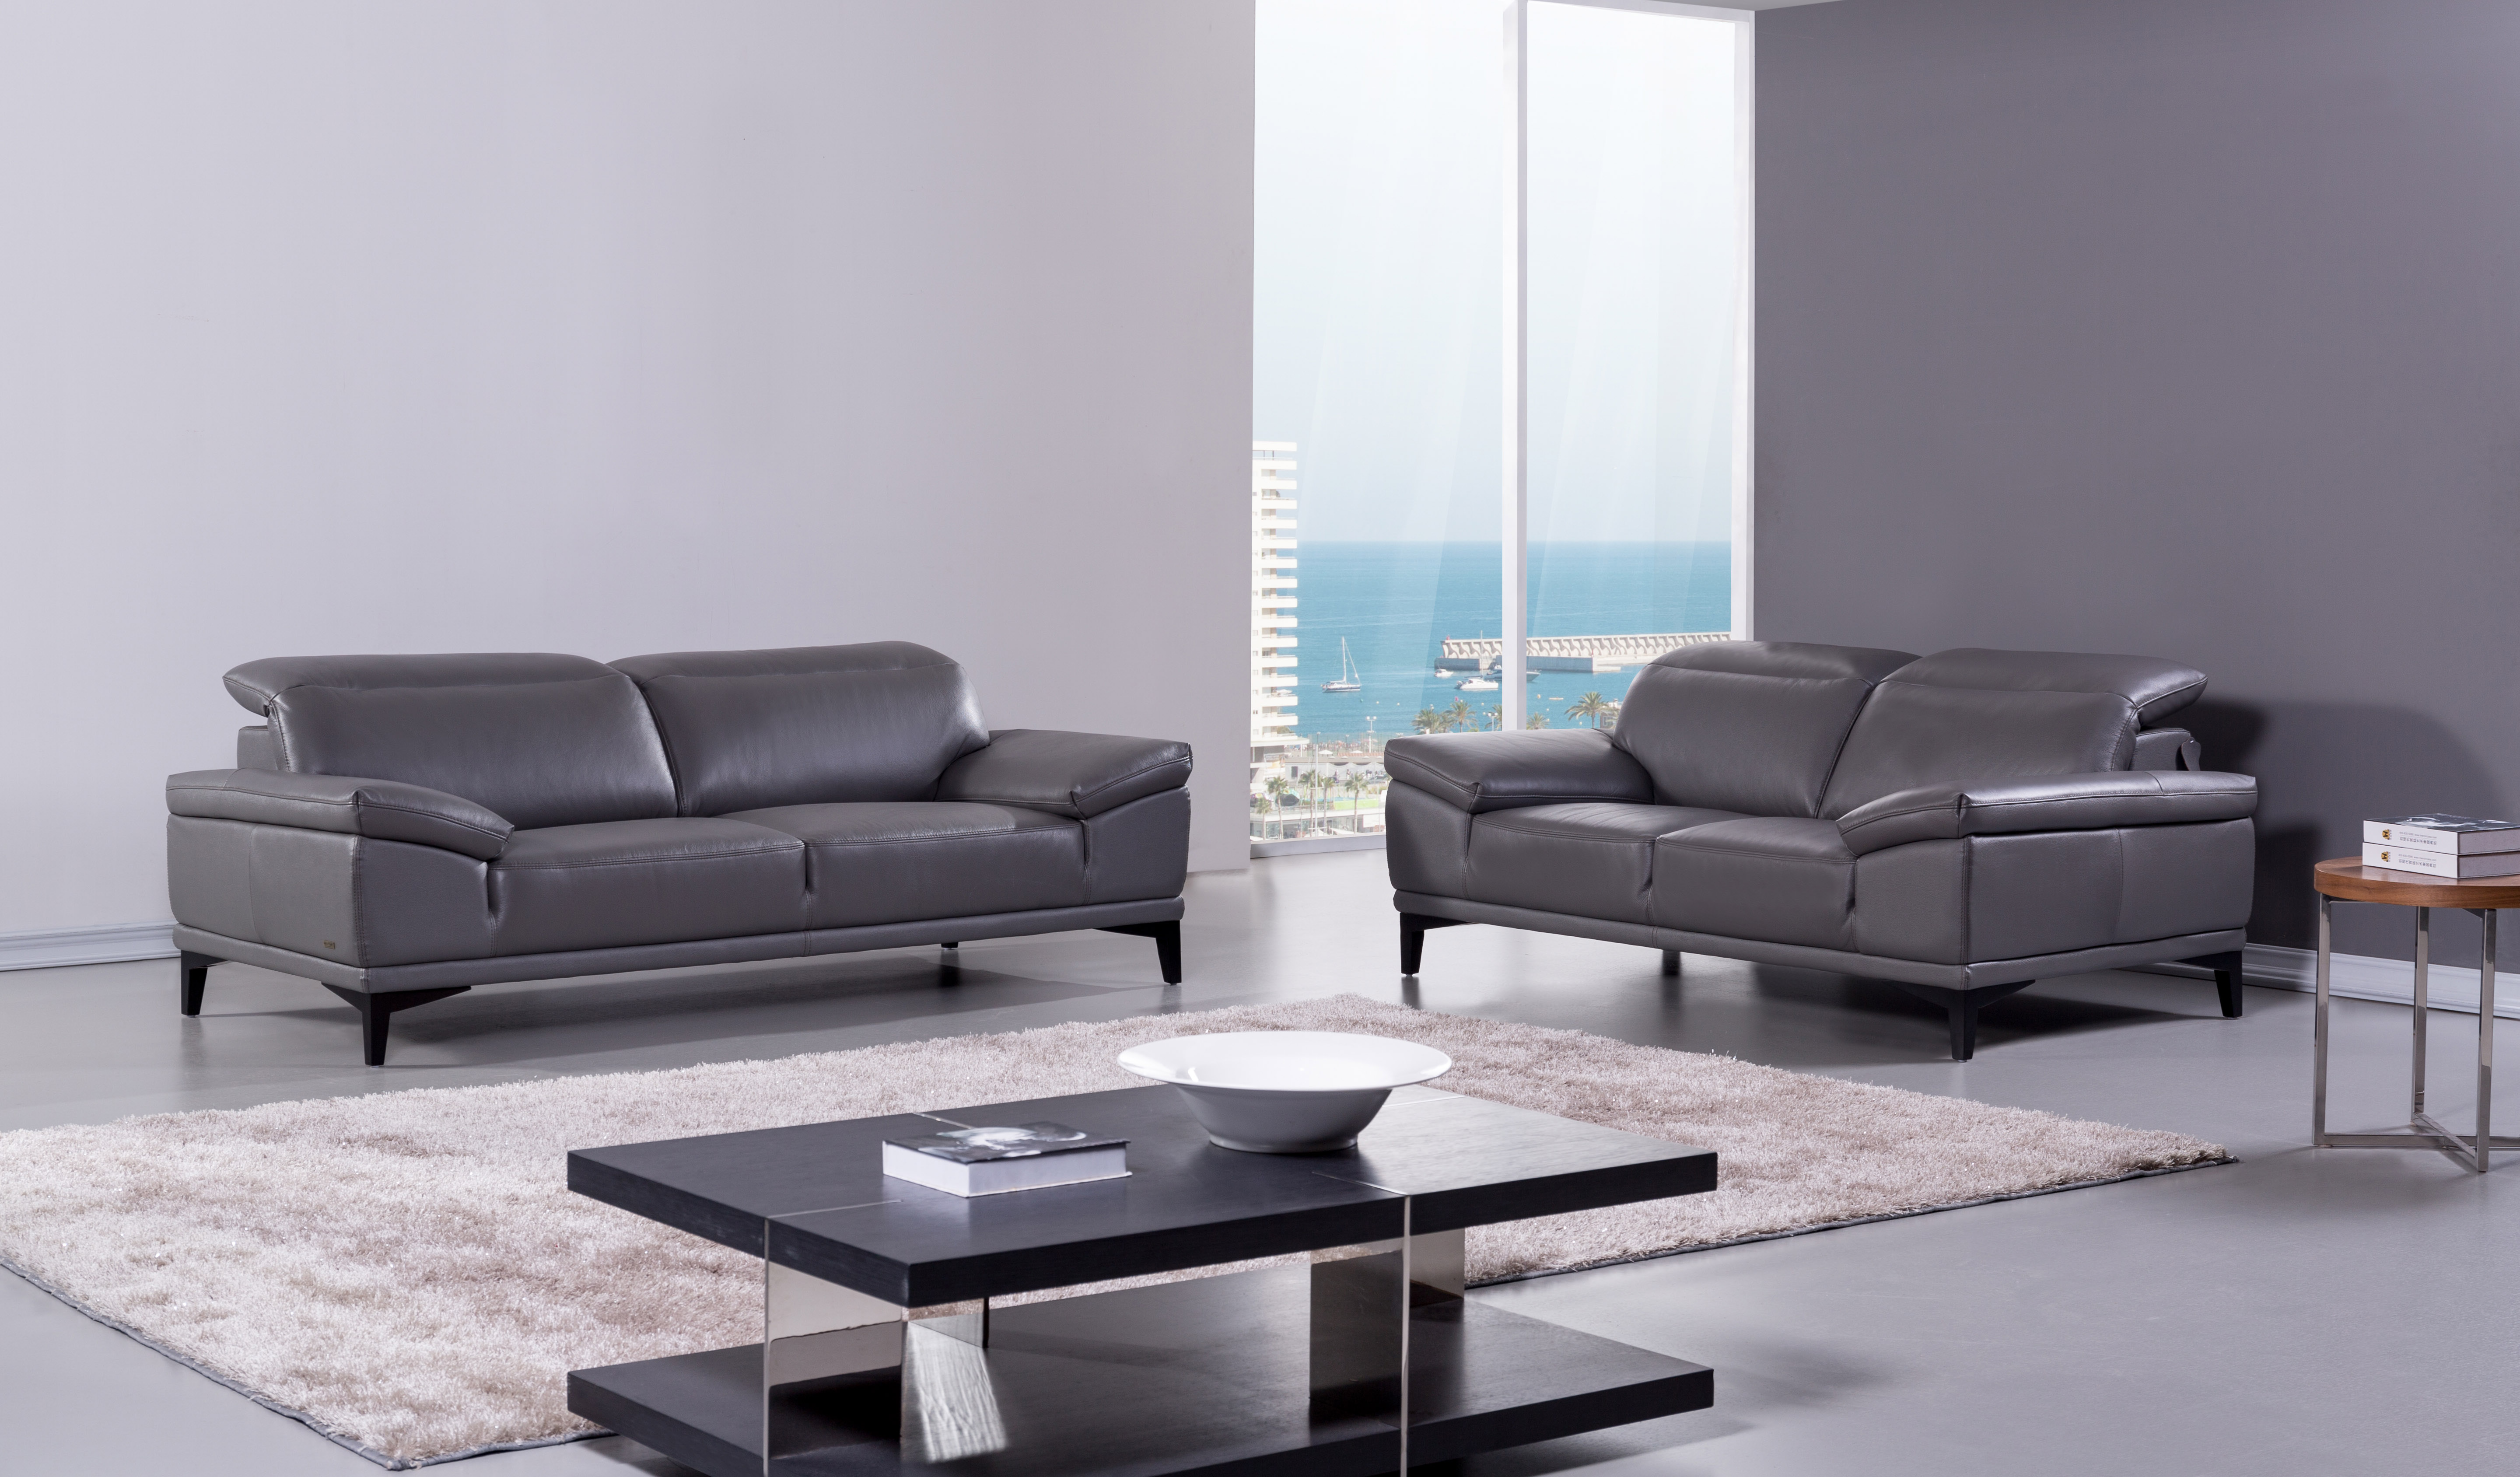 leather living room furniture sets contemporary genuine leather living room set baltimore 16653 | dark grey real italian leather sofa and loveseat bh 215